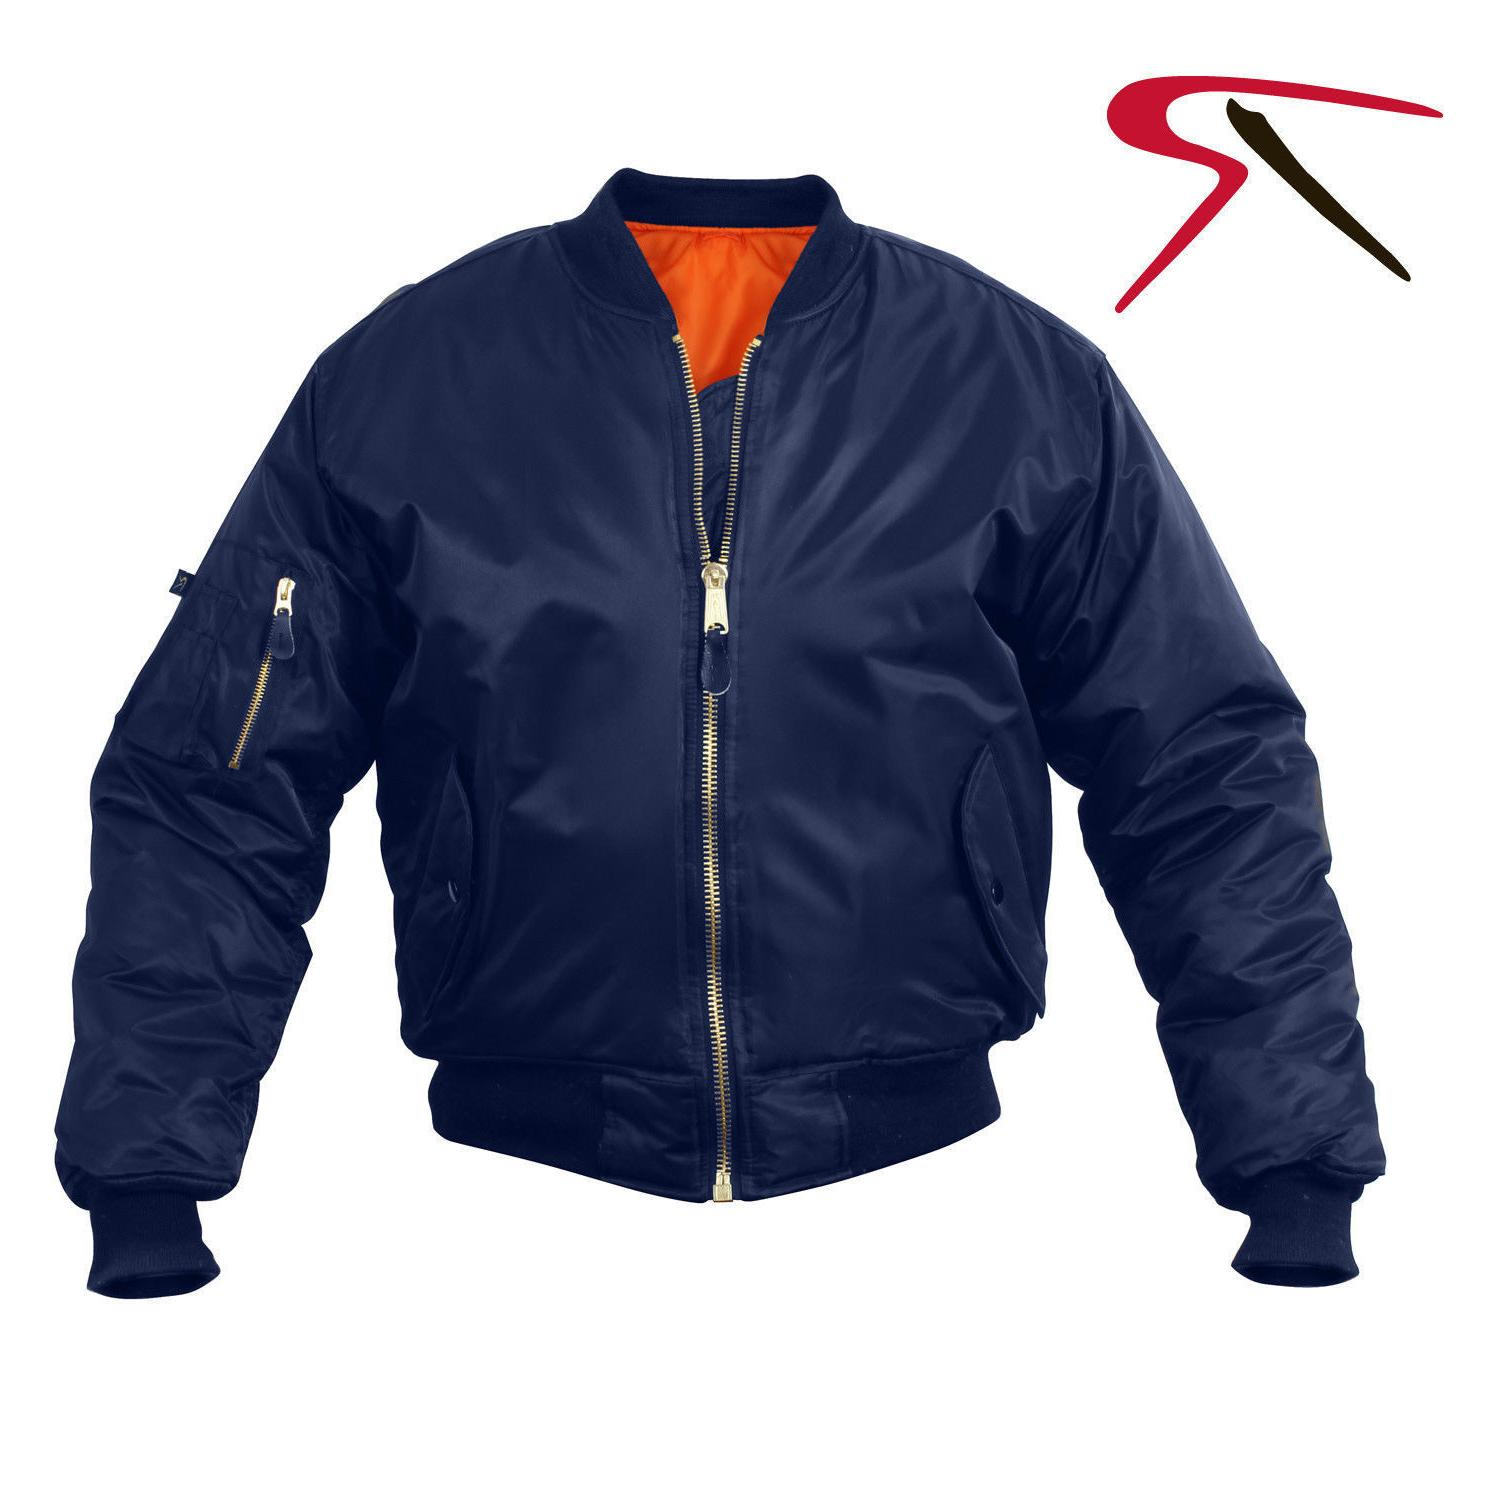 MA1 Jacket NEW YEARS Rothco AirForce Military Reversible Flight